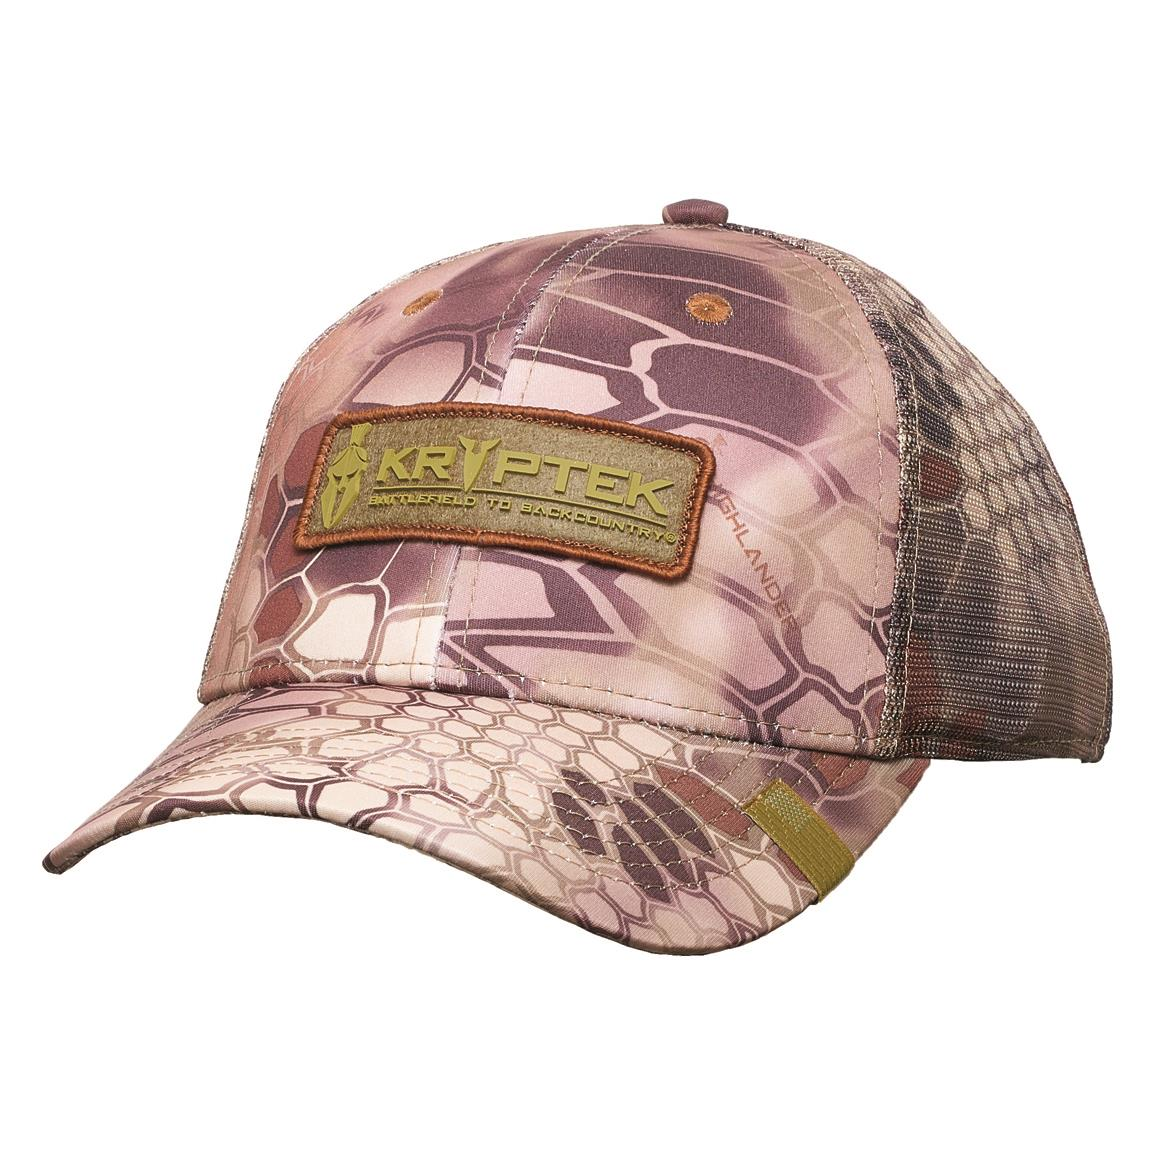 Kryptek Patch Cap, Highlander/highlander